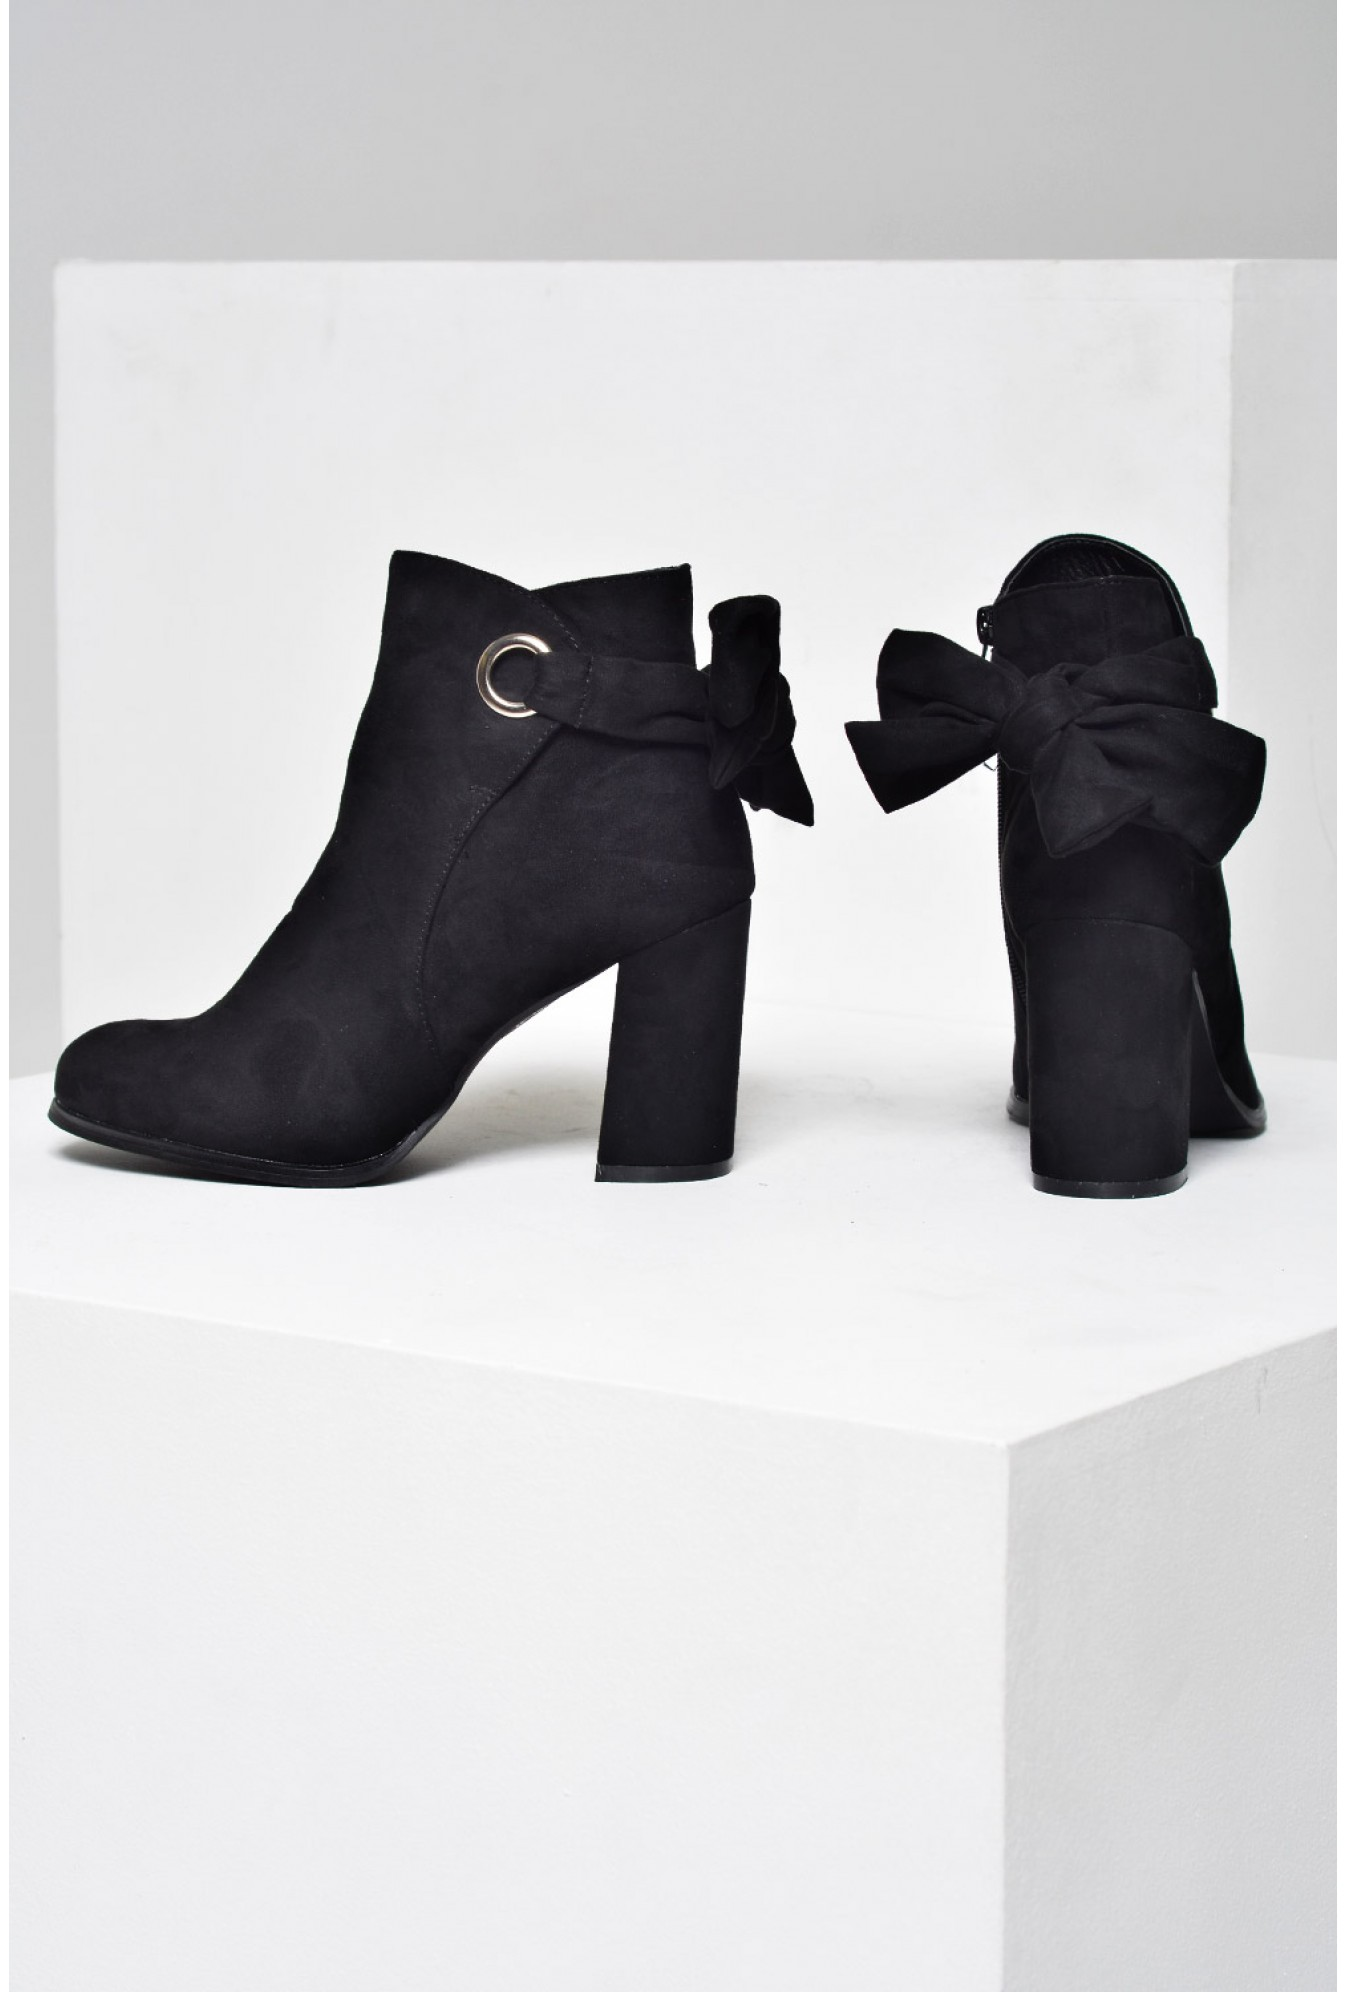 9d99d64ffe0 No Doubt Hannah Back Bow Ankle Boots in Suede Black | iCLOTHING